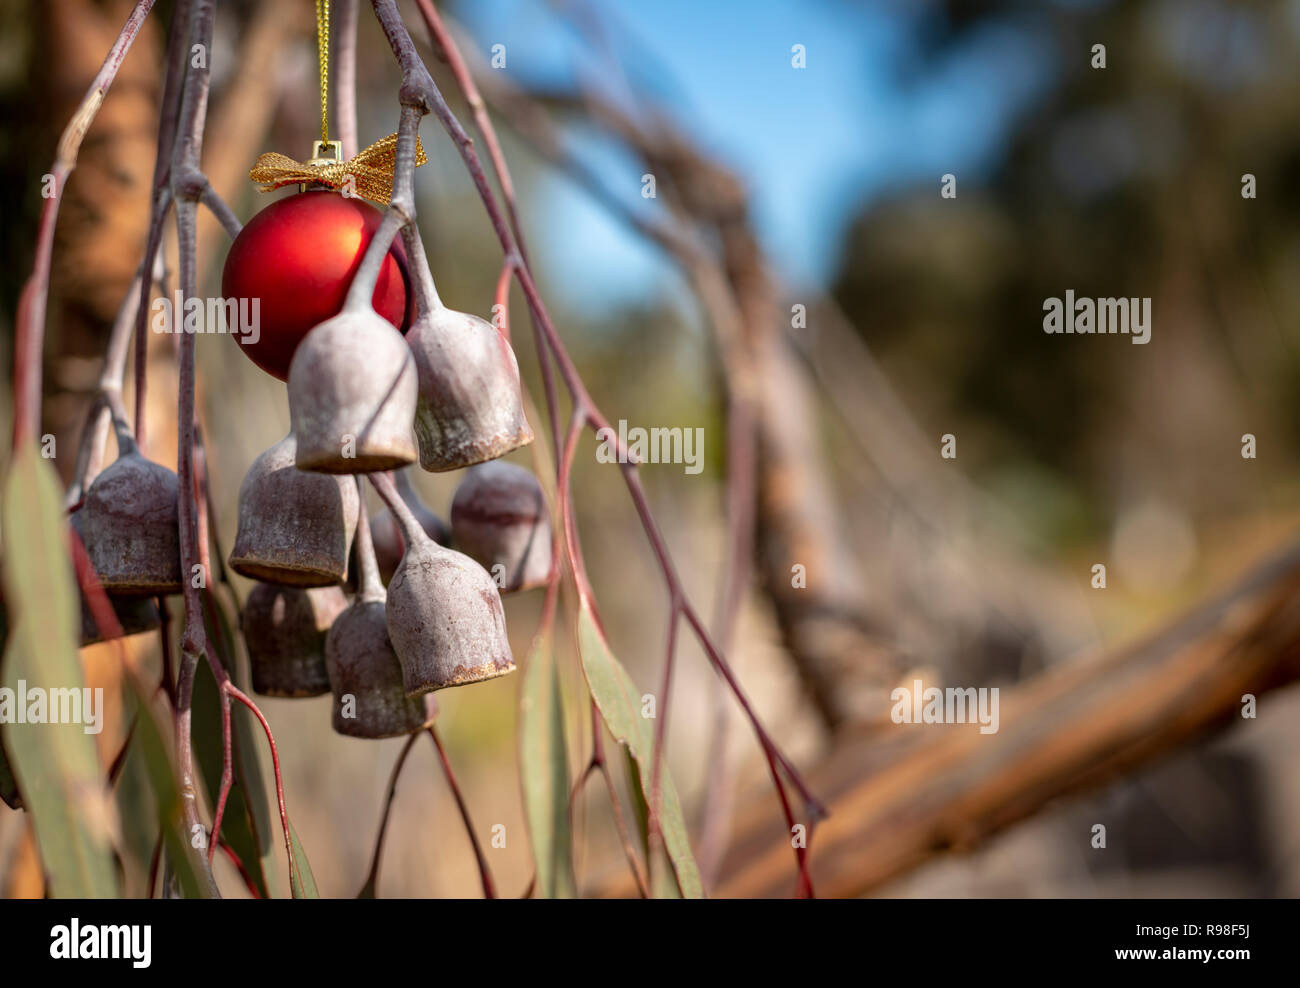 An Australian Christmas, gum tree and gum nuts with a red Christmas bauble, horizontal - Stock Image